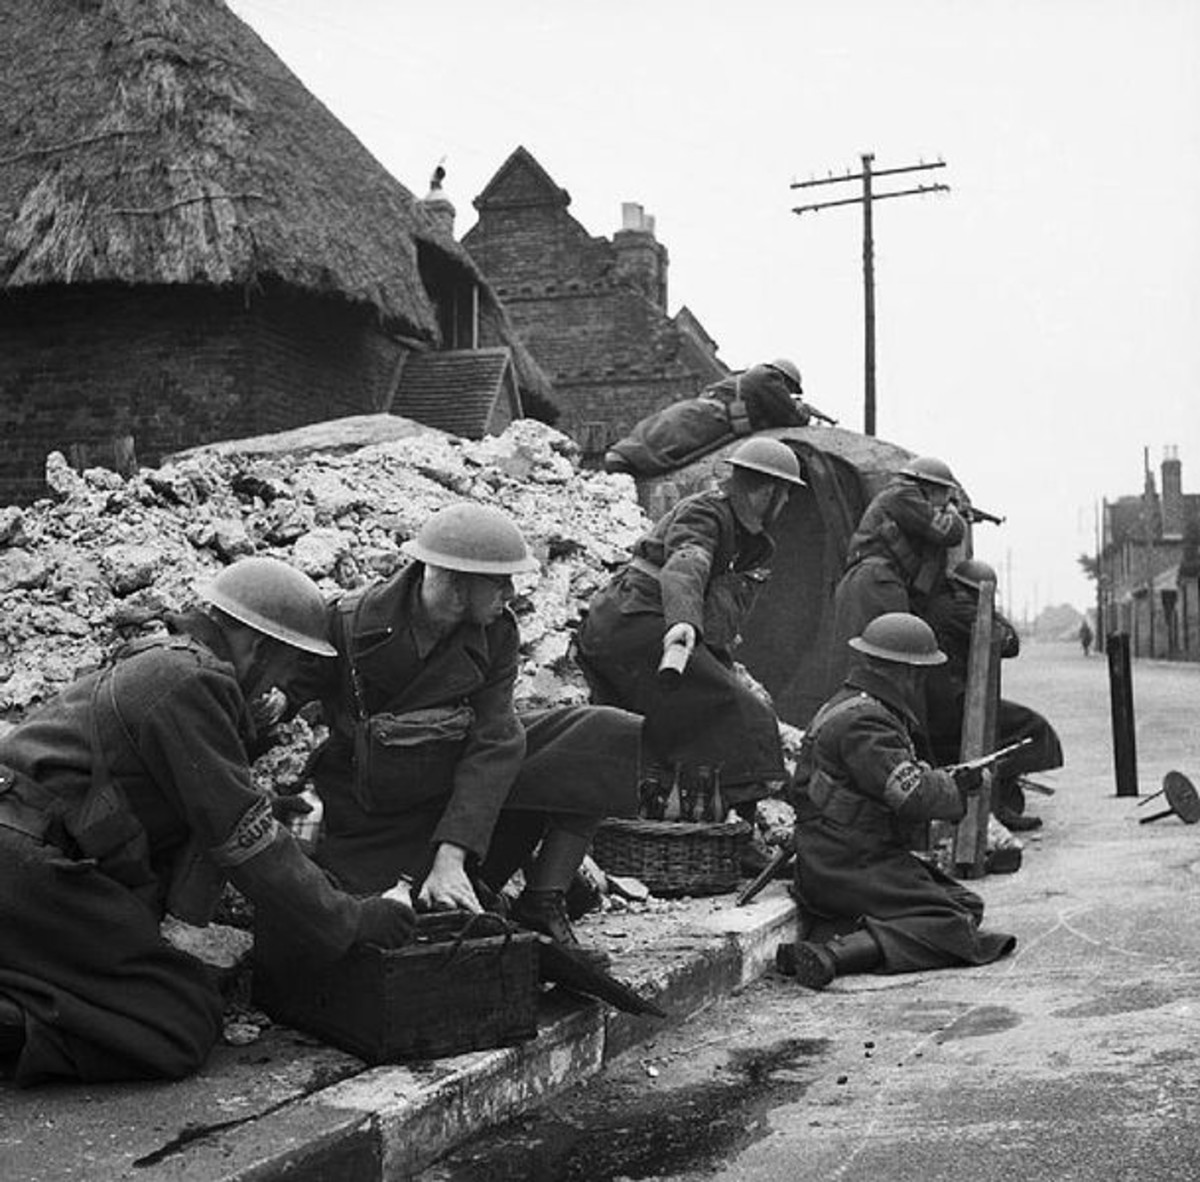 Home Guard soldiers training to defend a street with Molotov cocktails. Circa March 1941.